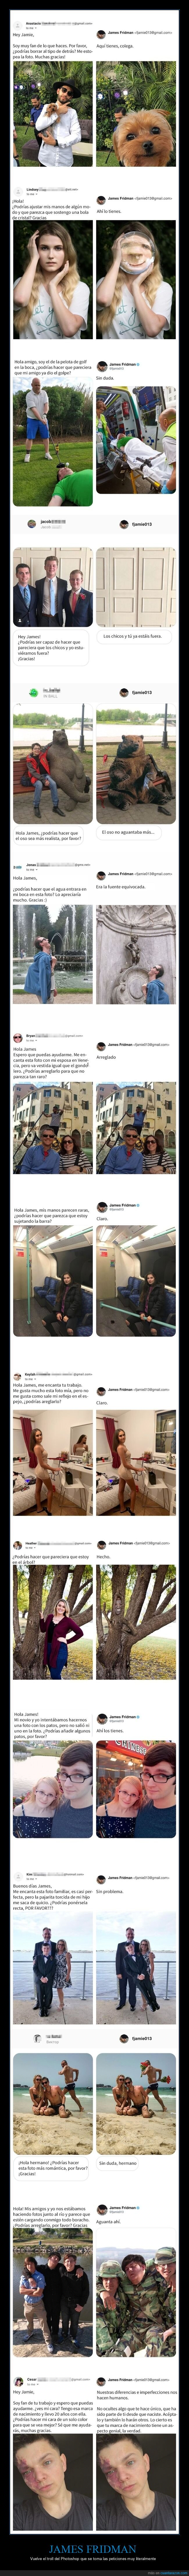 james fridman,photoshop,trolling